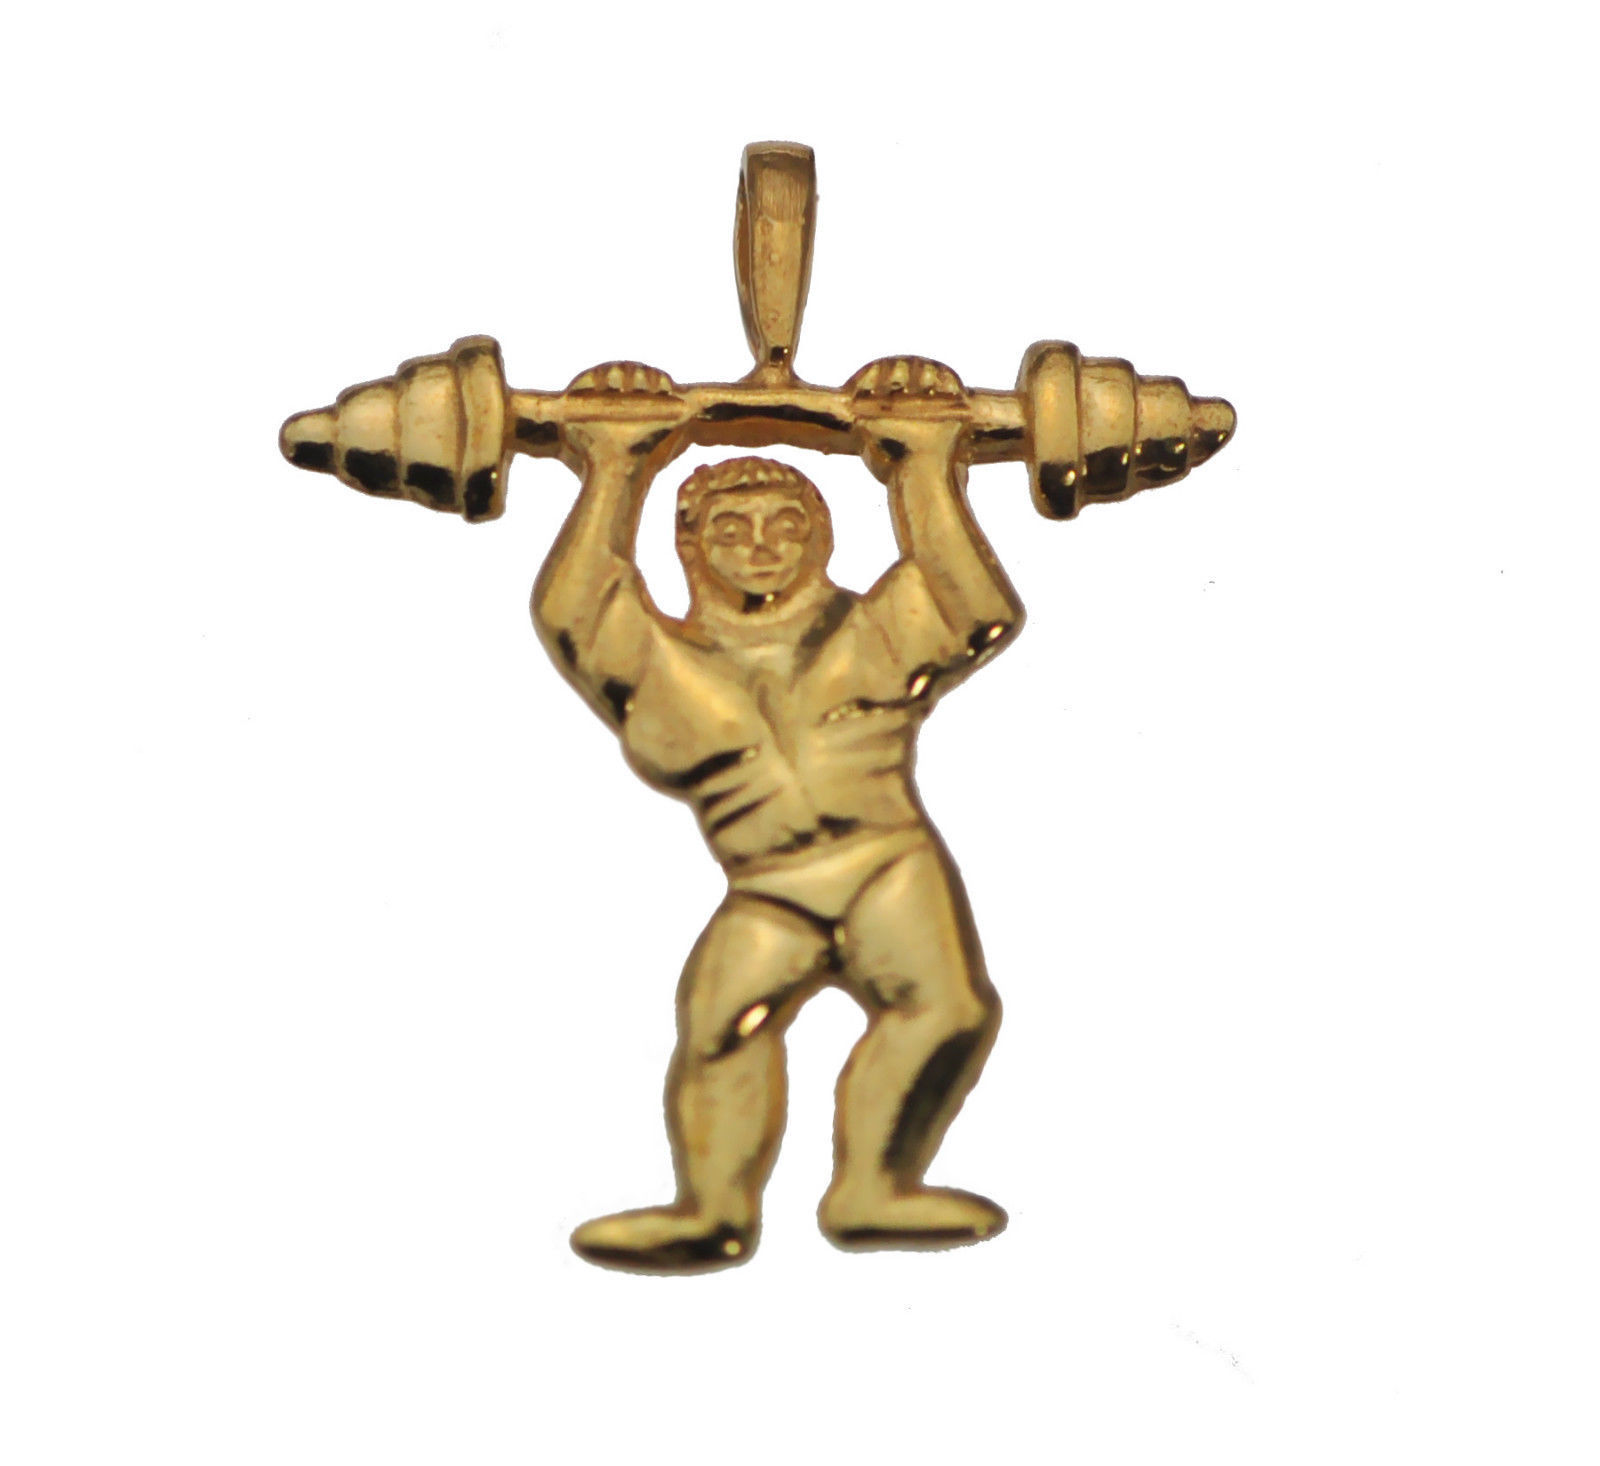 Primary image for 24K Gold Pltd Sterling silver weight lifter charm Body Builder Bulking Season